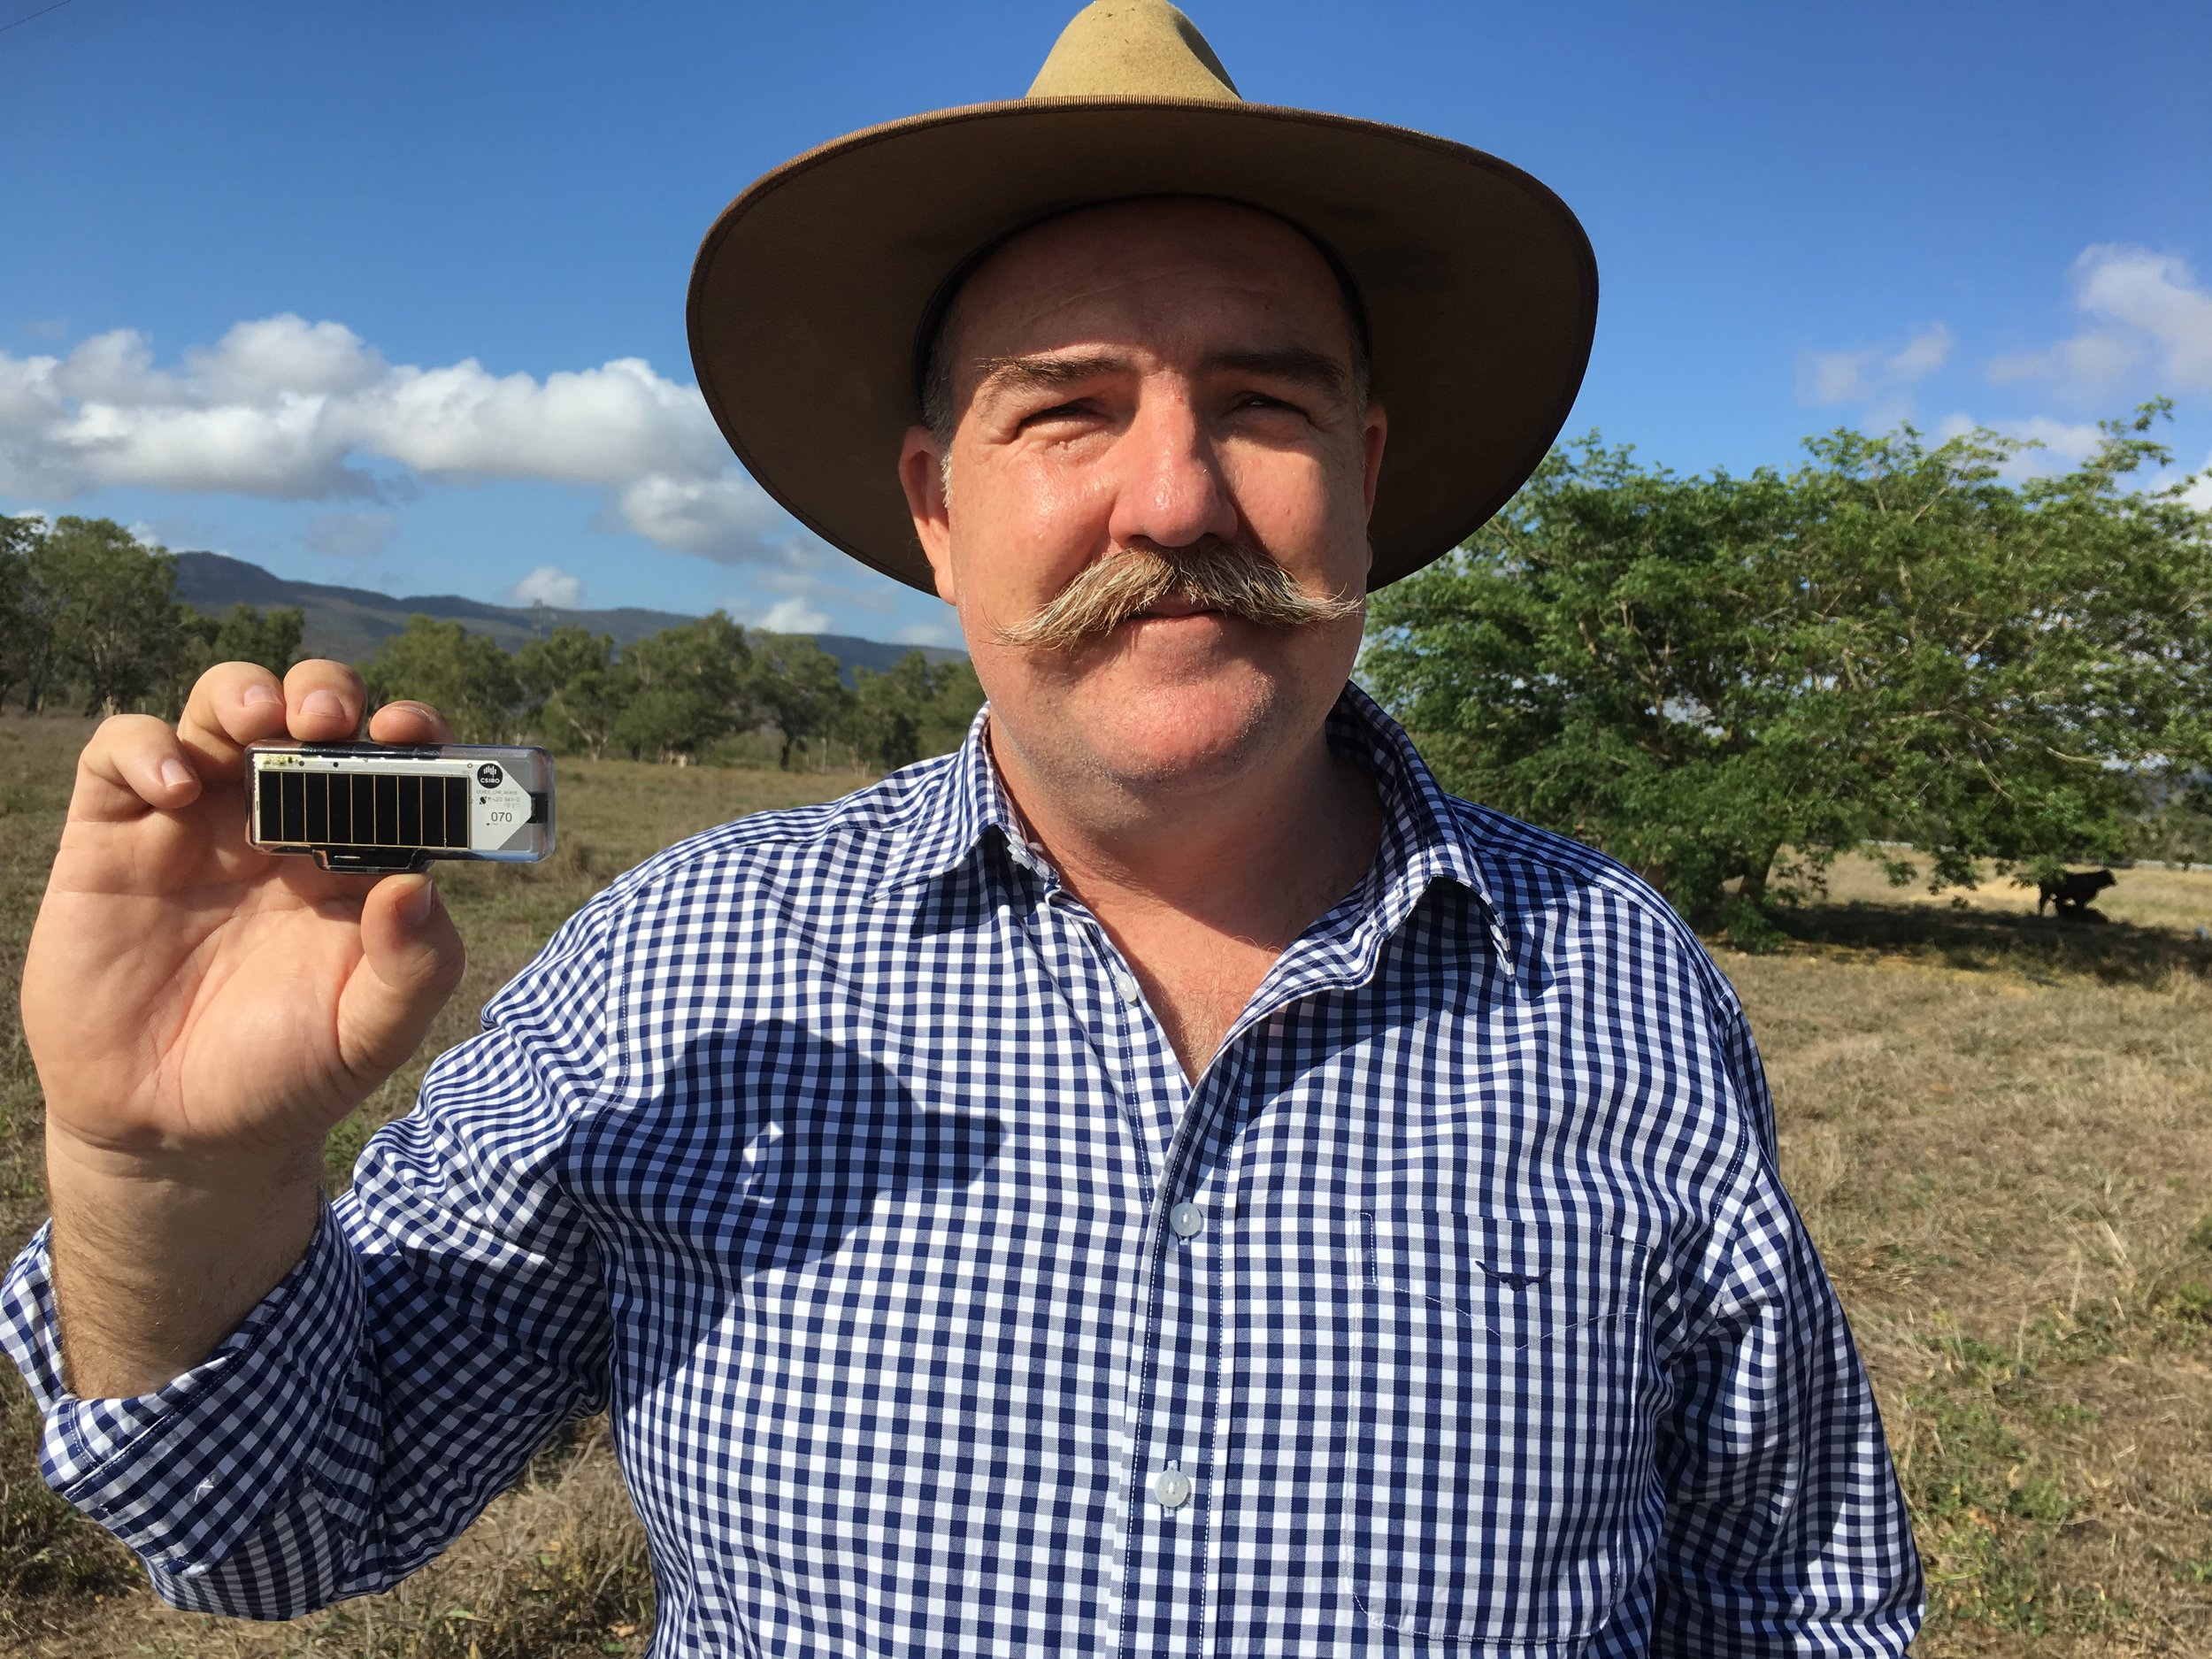 Ceres Tag CEO, David Smith onsite at CSIRO Research Cattle Station with next gen smart tag.